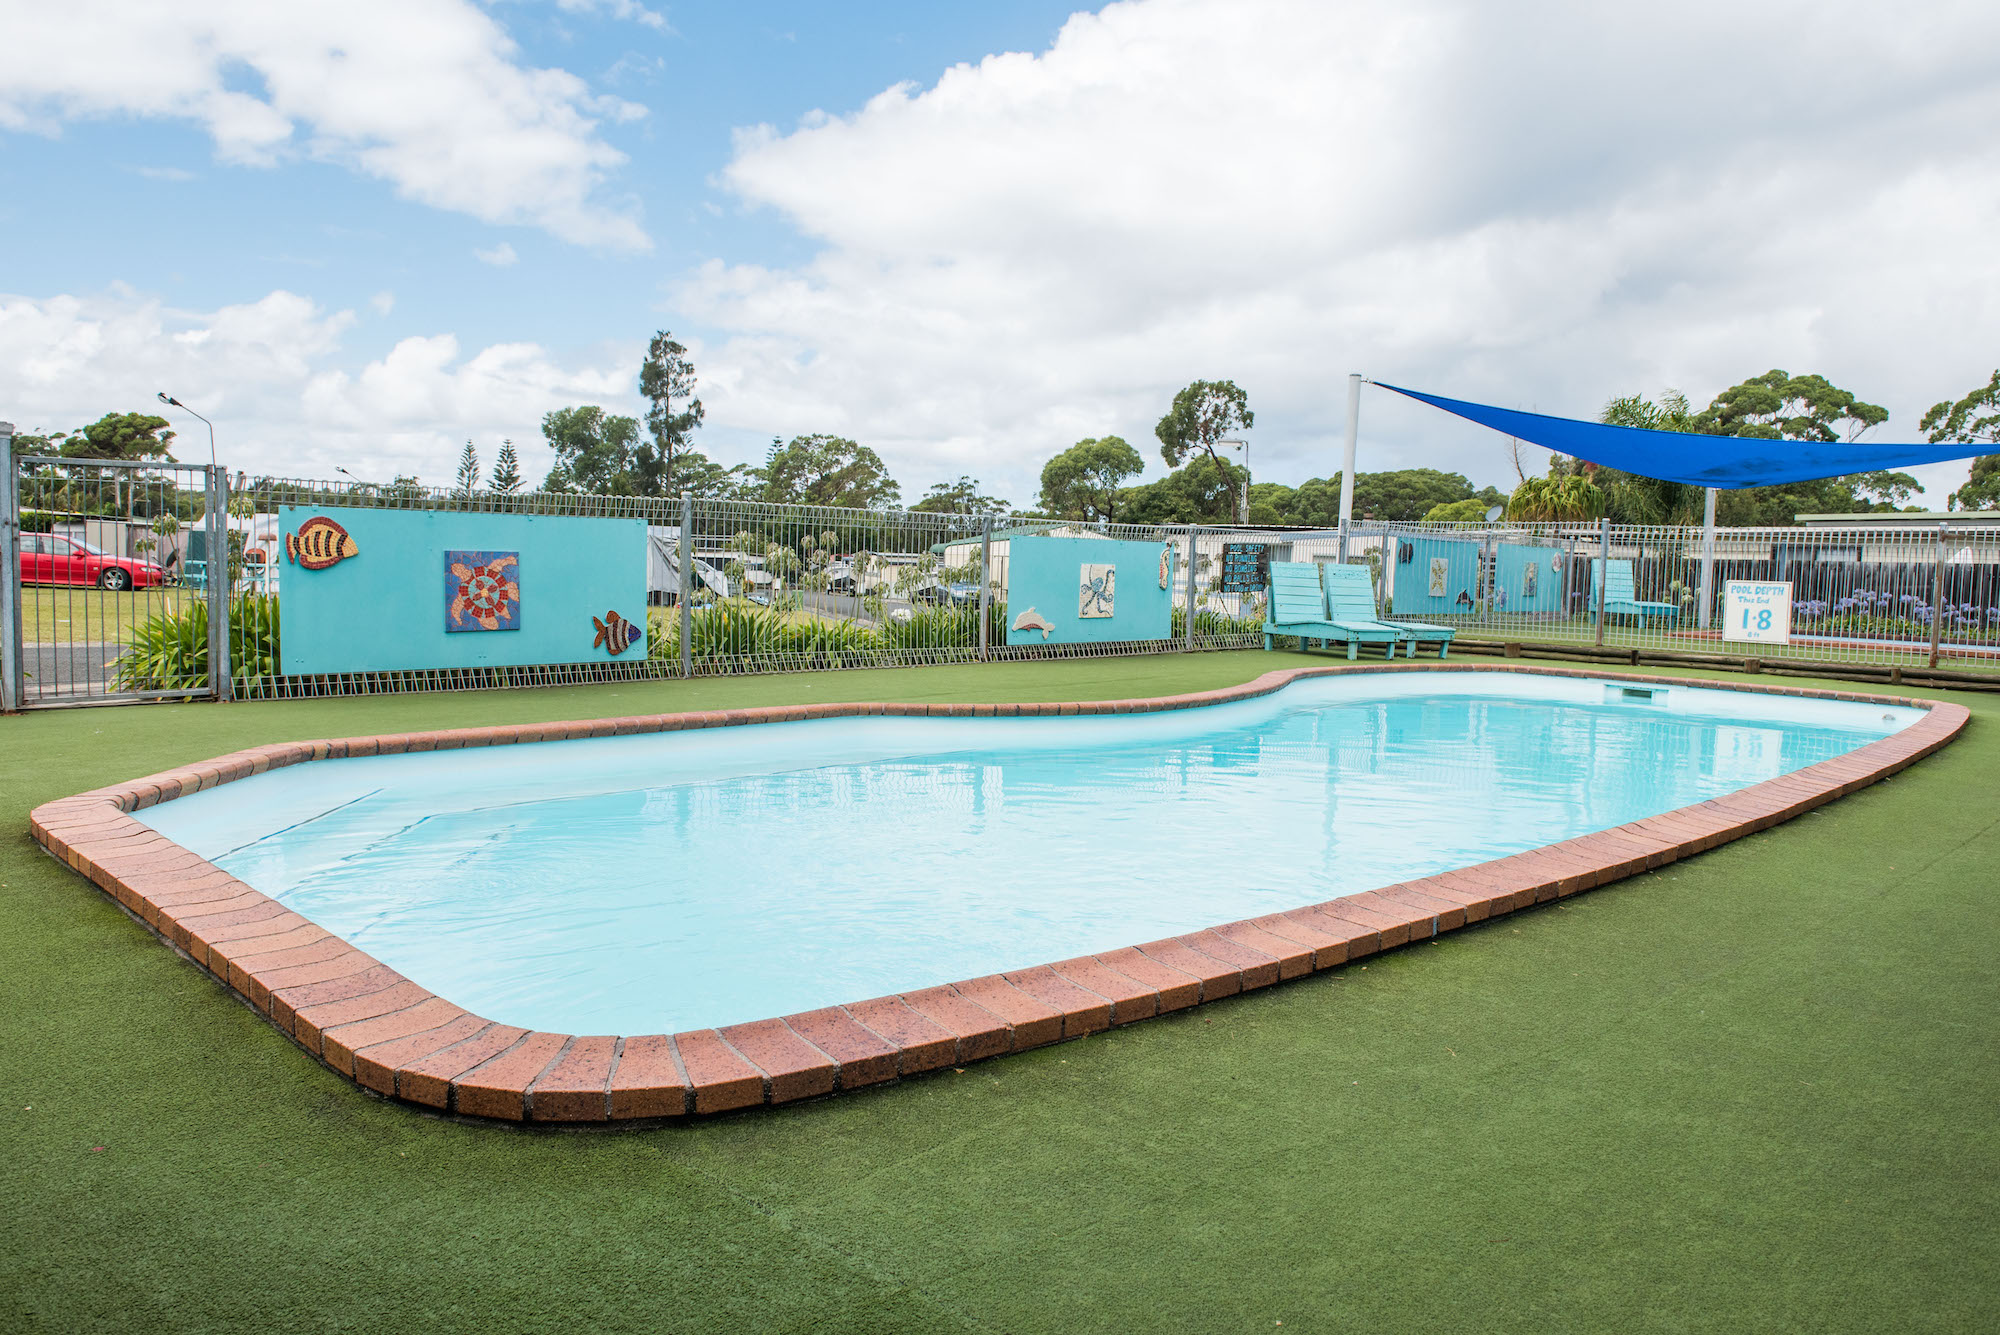 swimming-pool-facilities-cabin-accommodation-swan-lake-nsw-lakeside-cabins